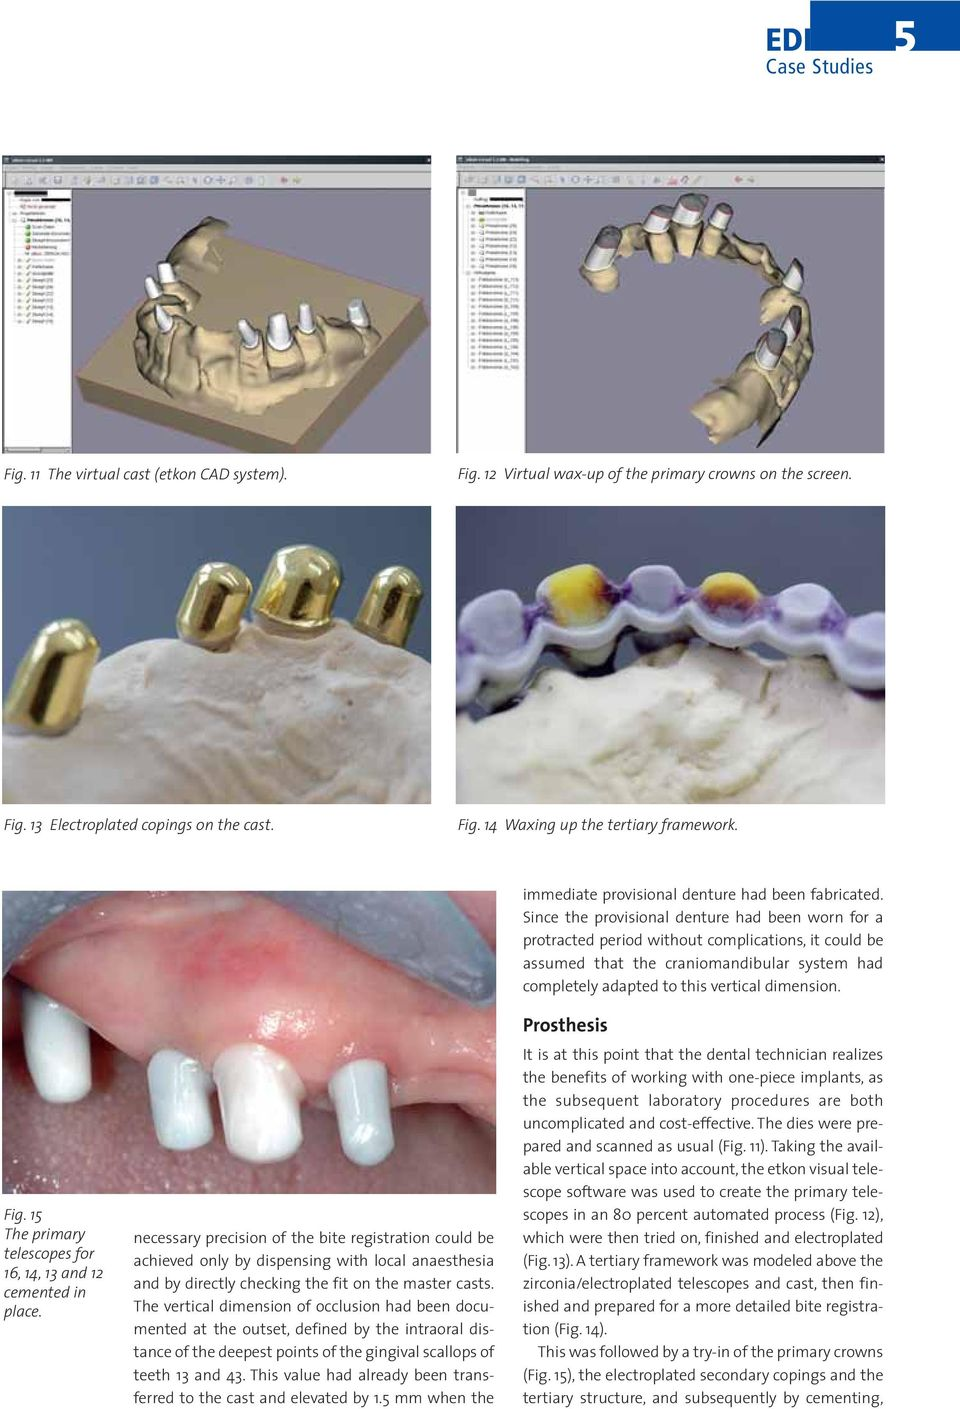 The vertical dimension of occlusion had been documented at the outset, defined by the intraoral distance of the deepest points of the gingival scallops of teeth 13 and 43.